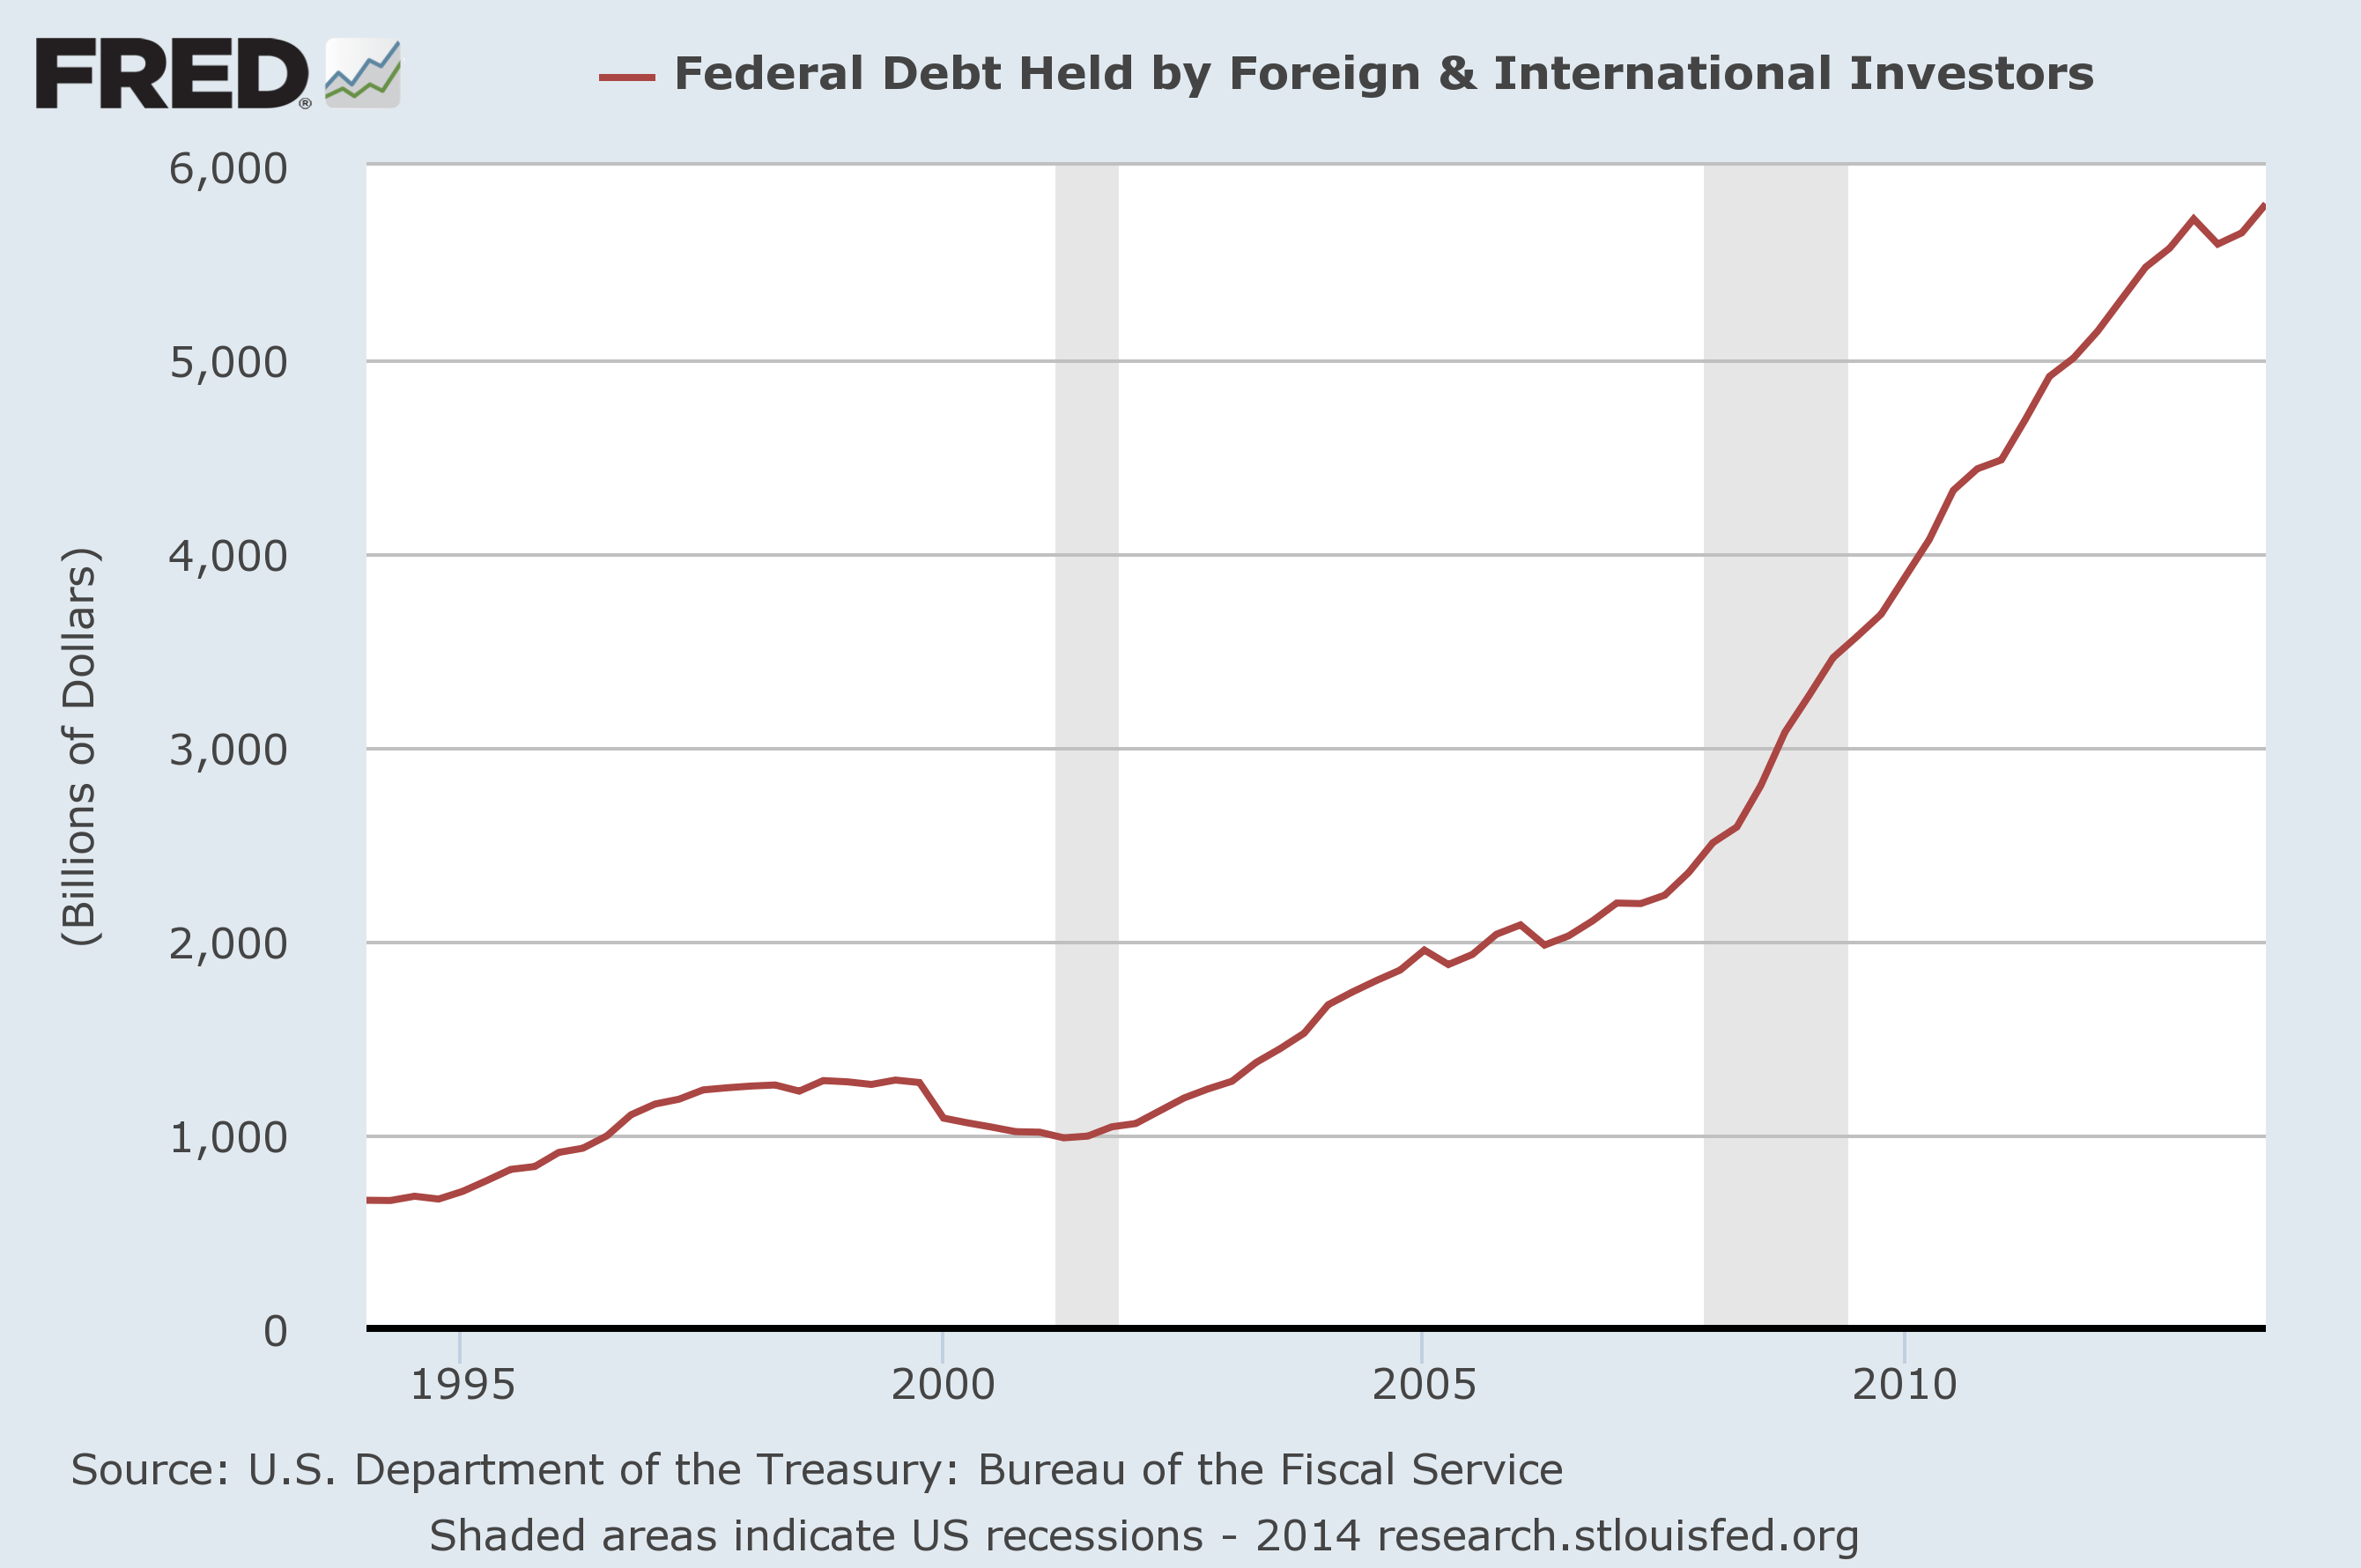 Foreign Holdings of US Federal Securities